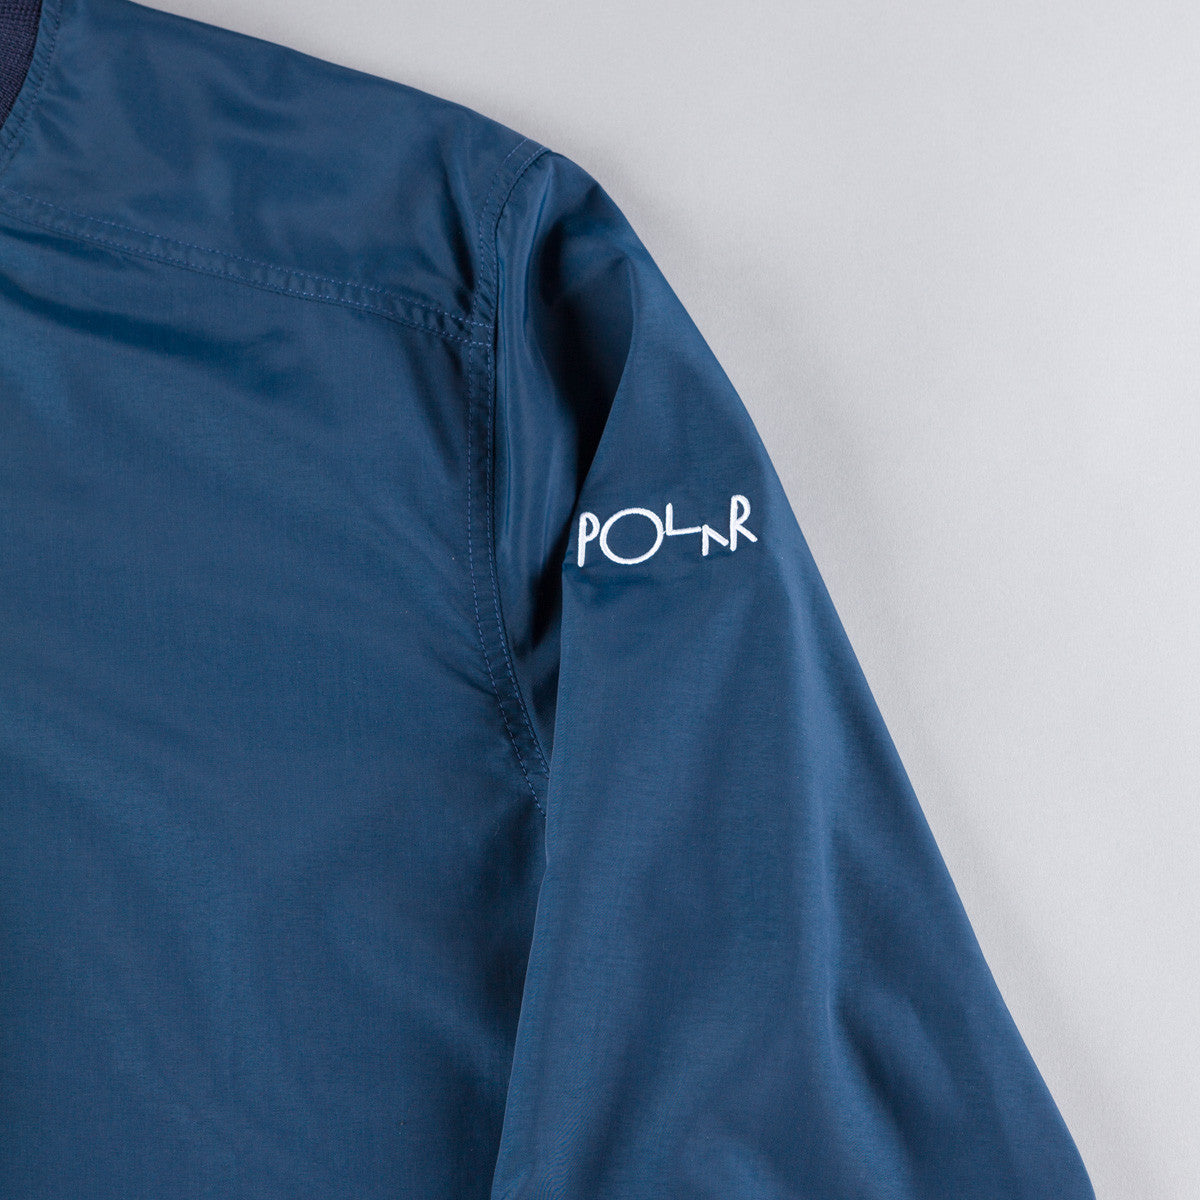 Polar Golf Club Pullover Jacket - Navy